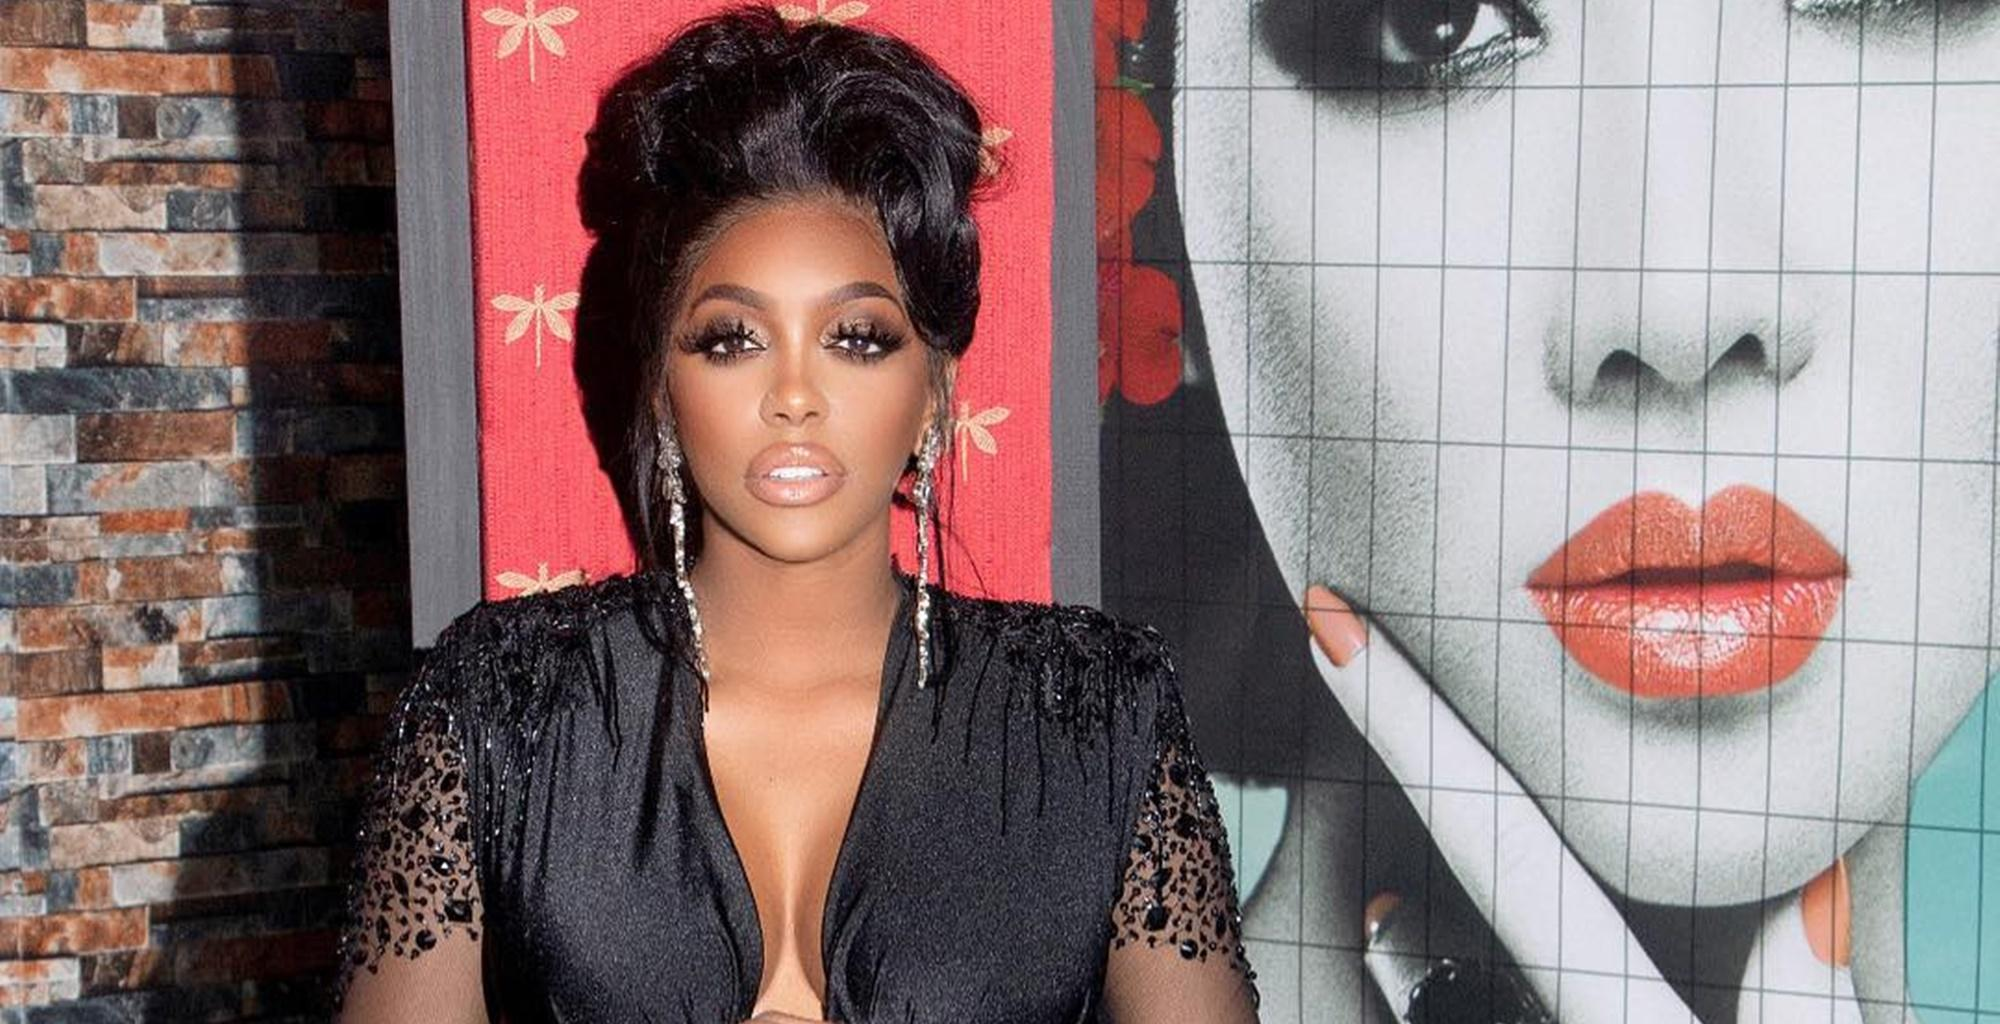 Porsha Williams Gives A Glimpse Of Baby Pilar's Face In New Picture As She Turns One Month Old